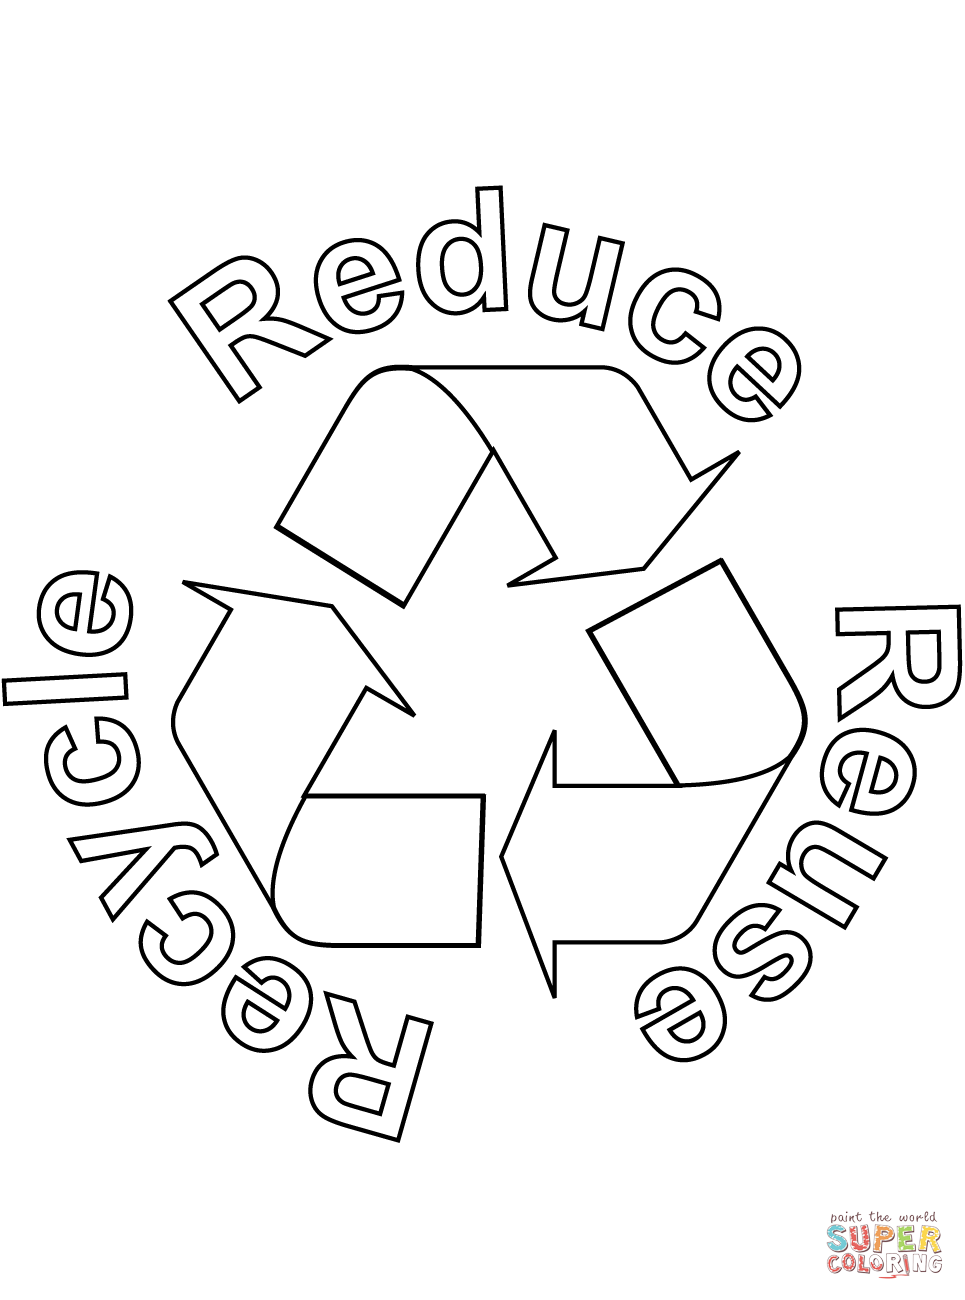 Battery Recycling Symbol Coloring Book Kids Coloring Free